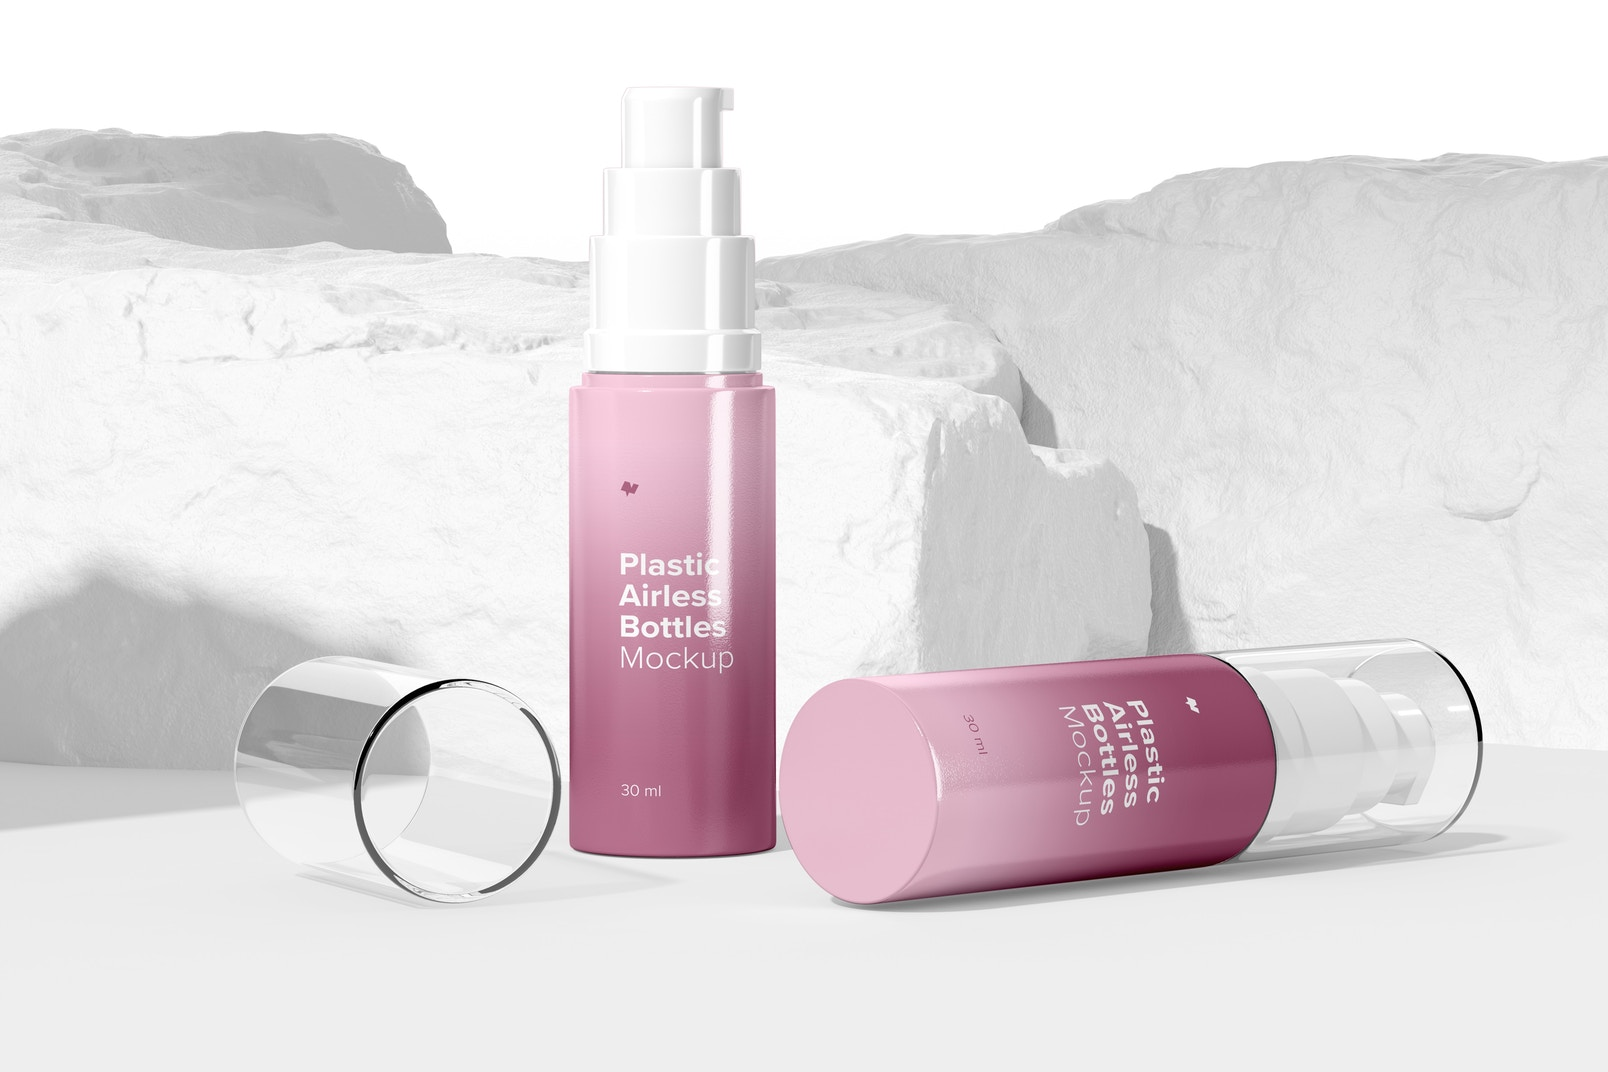 Plastic Airless Bottles Mockup, Standing and Dropped